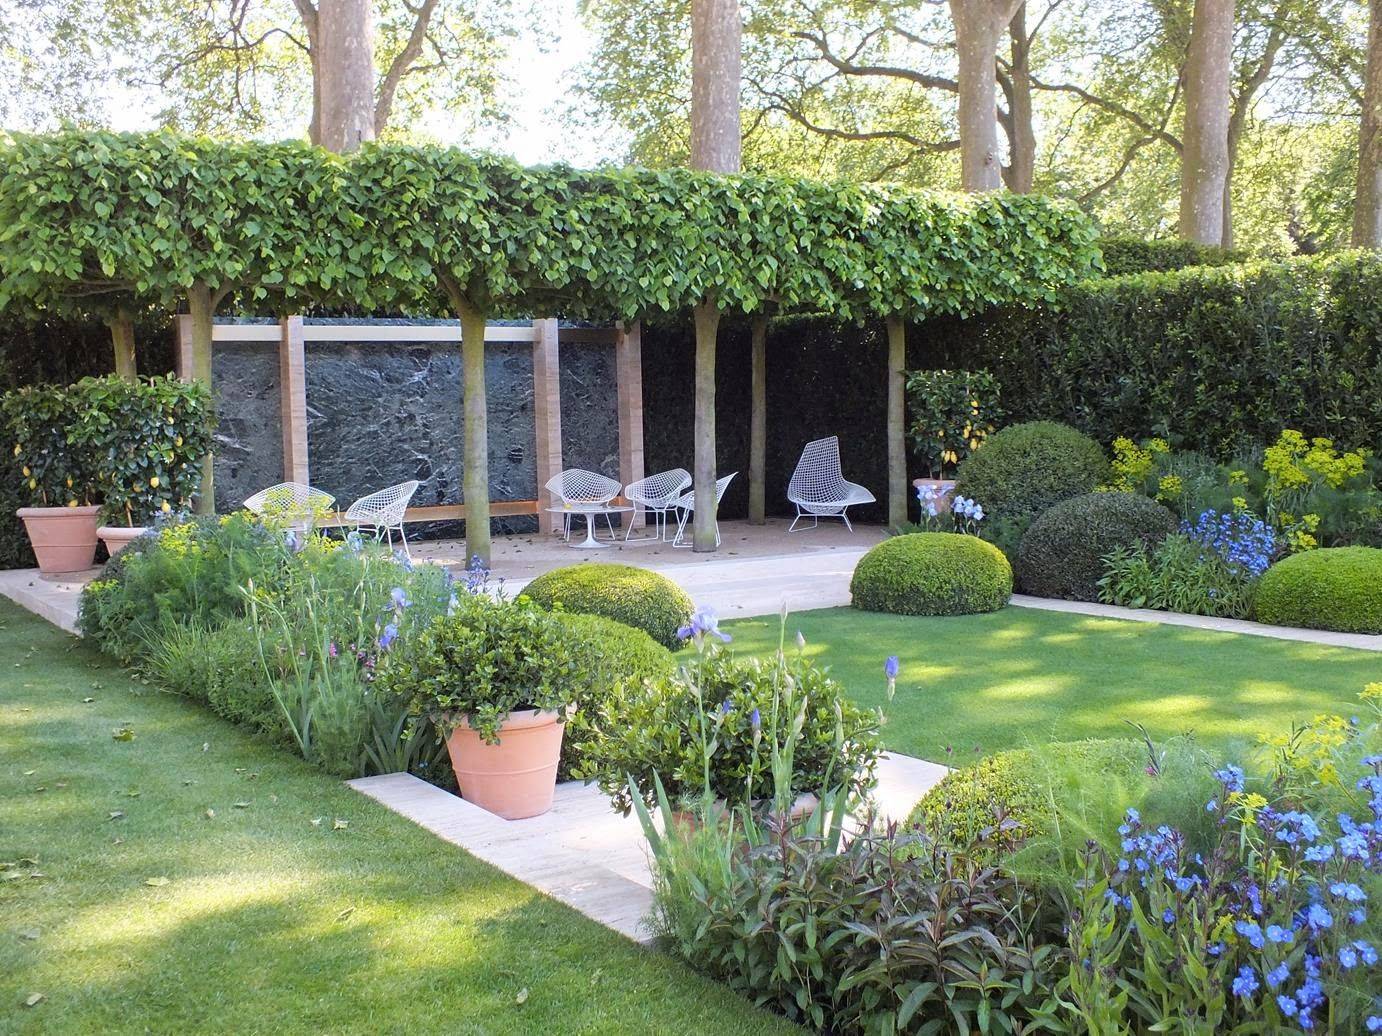 Pin On Rhs Chelsea Flower Show 2014